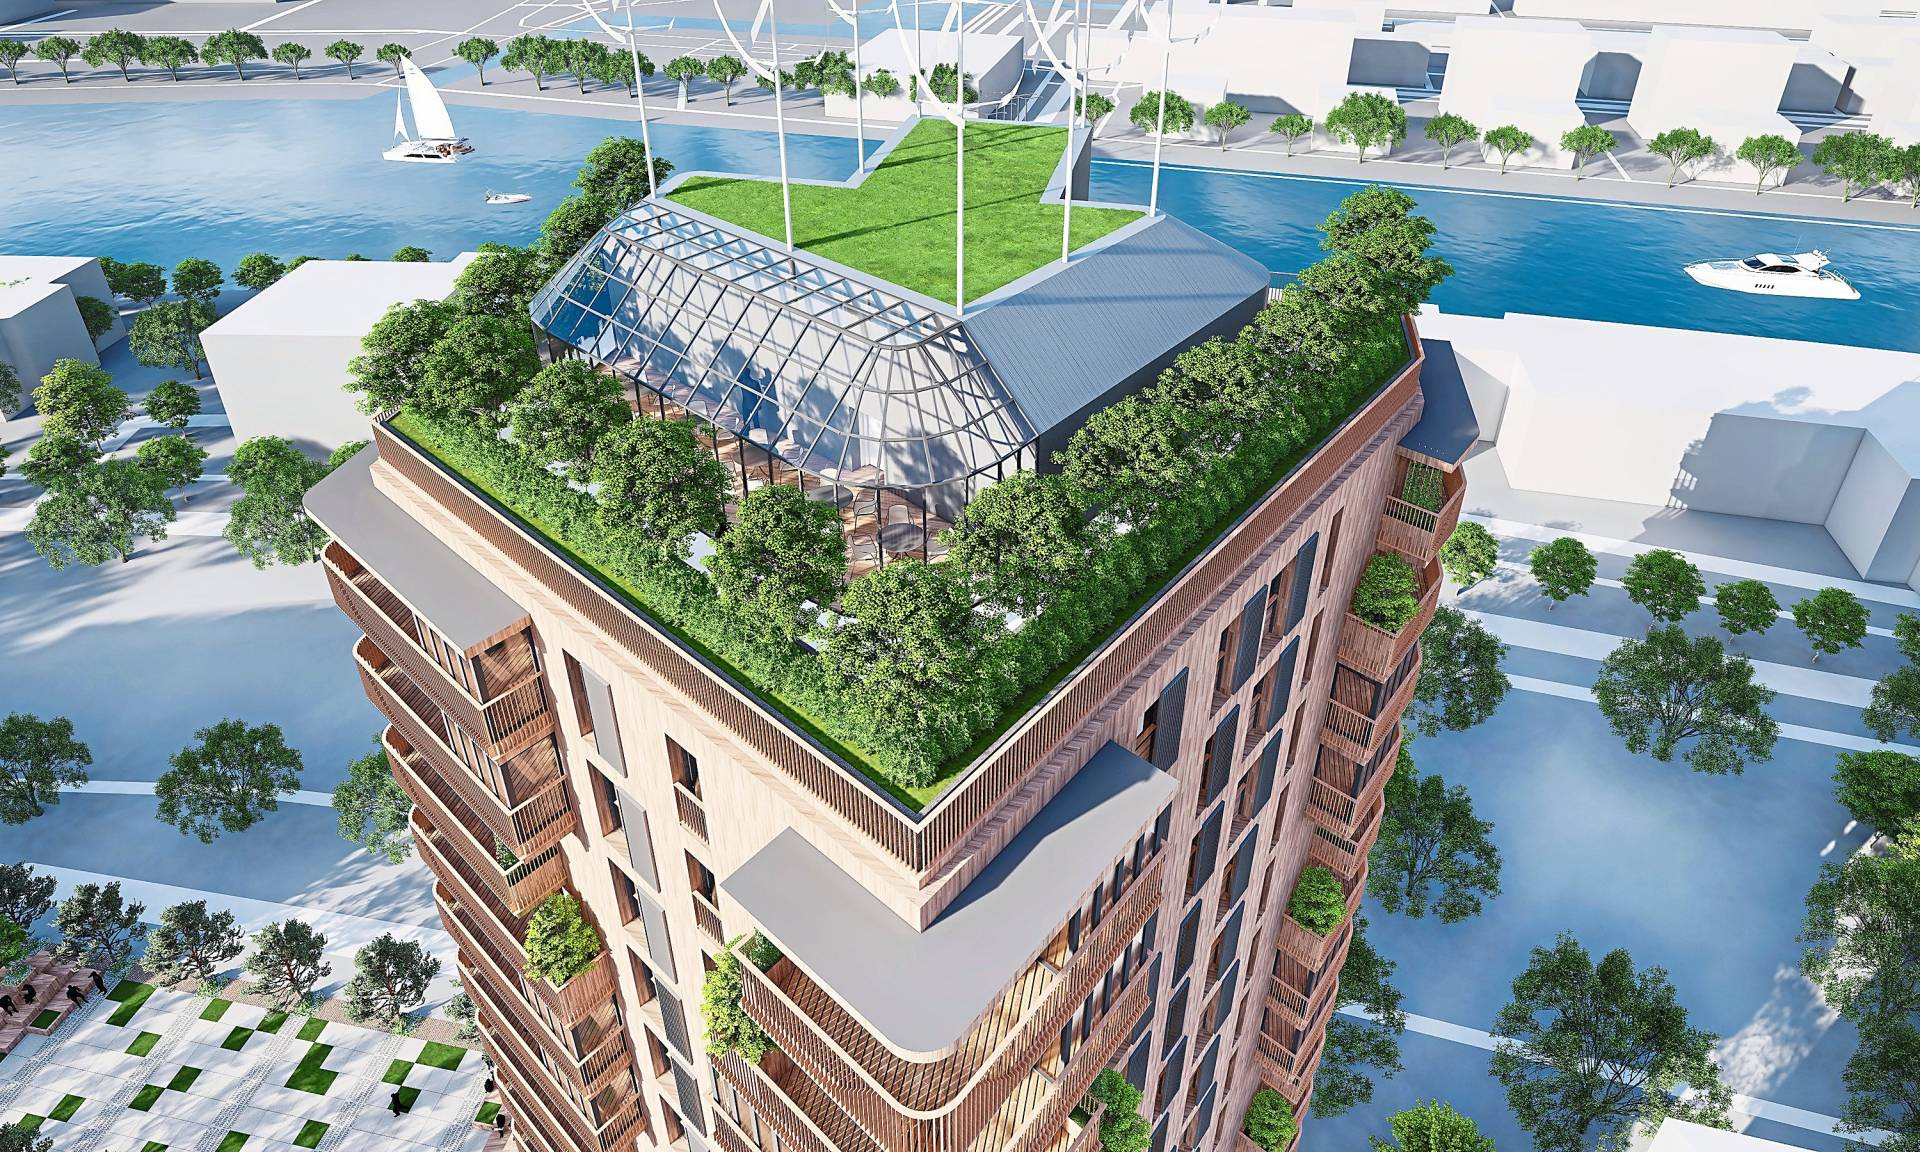 Artist's impression of the 15-storey residential tower sky garden.